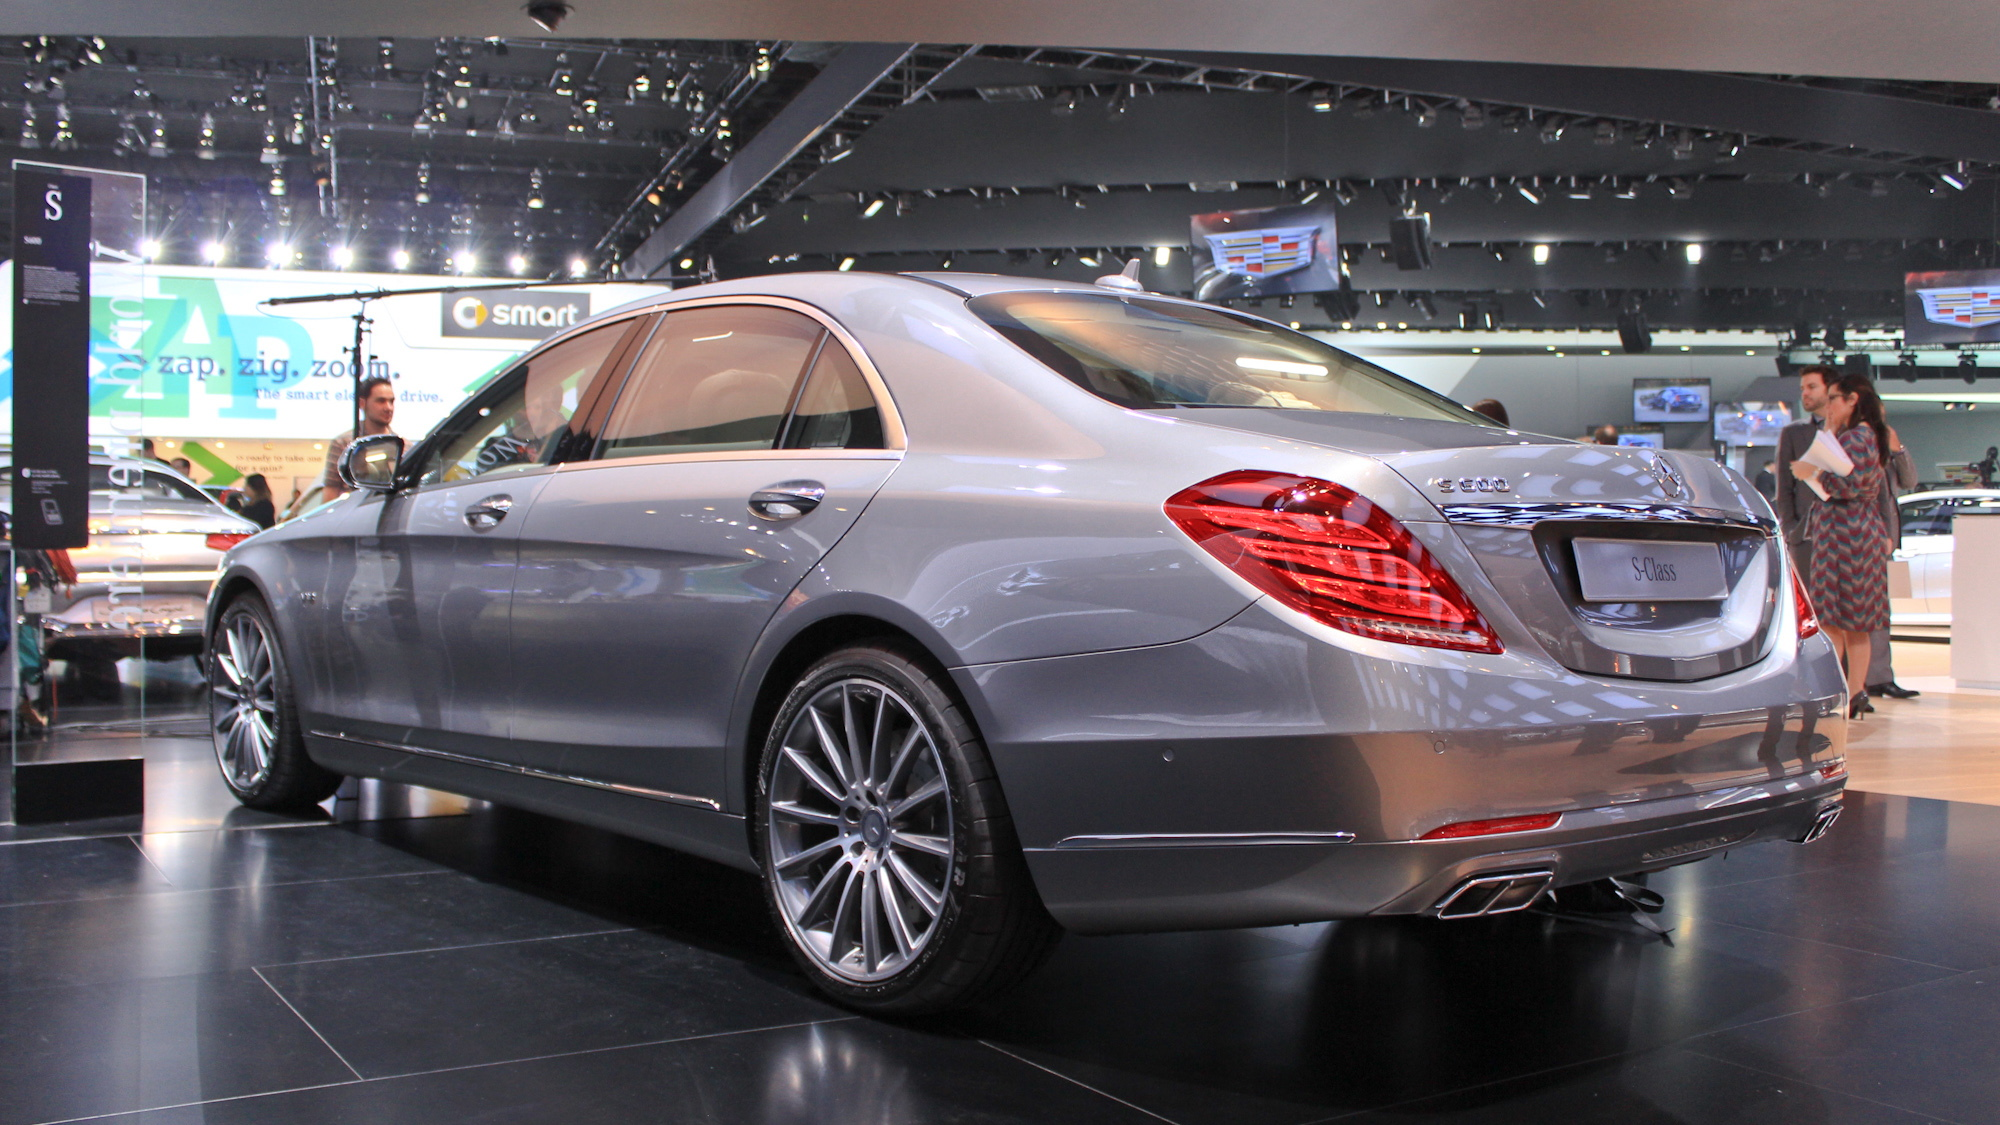 2015 Mercedes-Benz S600 live photos, 2014 Detroit Auto Show